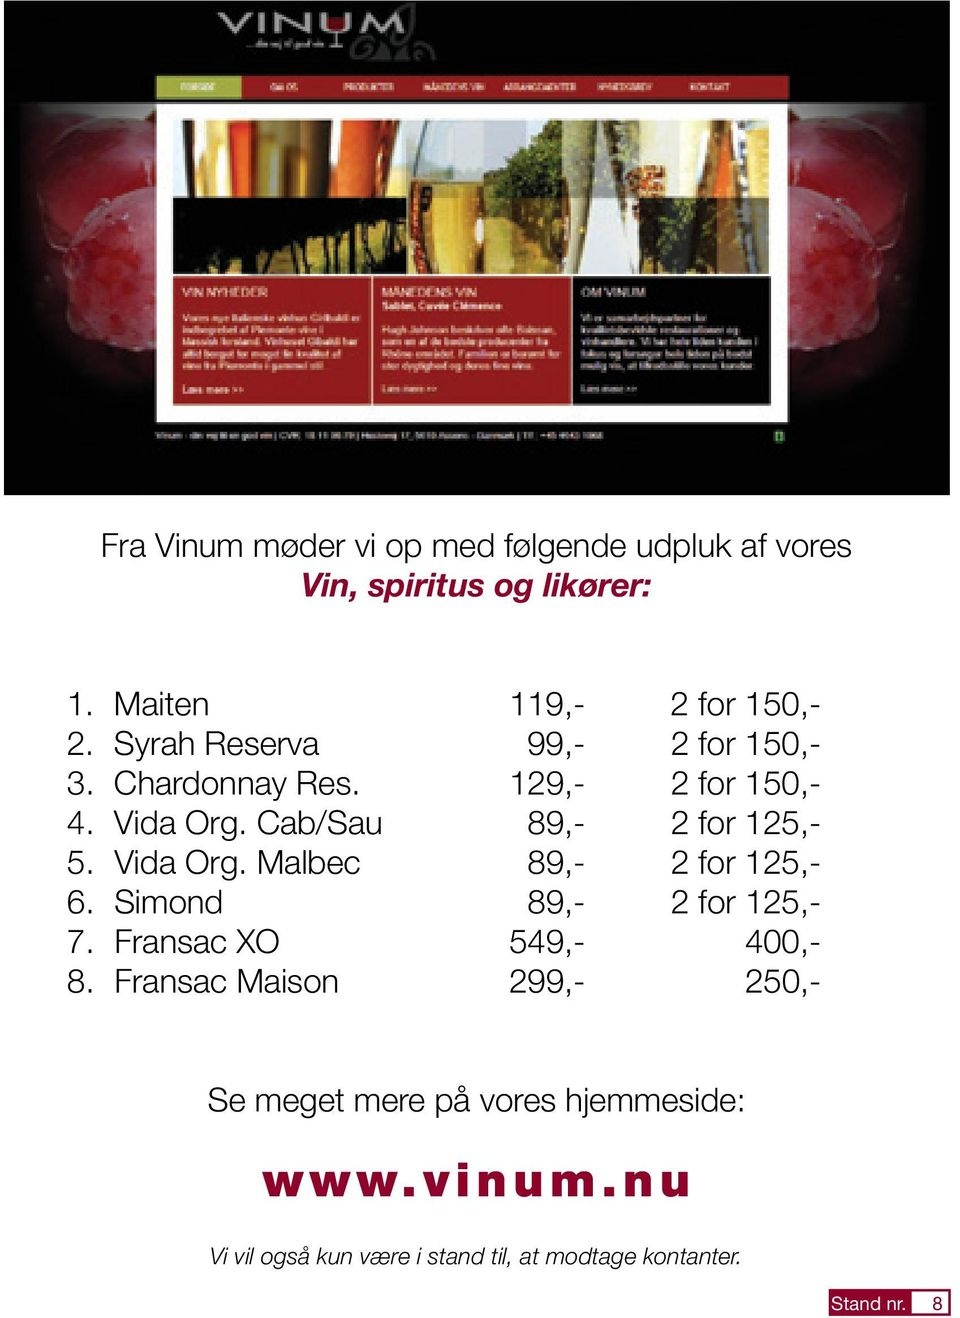 Vida Org. Malbec 89,- 2 for 125,- 6. Simond 89,- 2 for 125,- 7. Fransac XO 549,- 400,- 8.